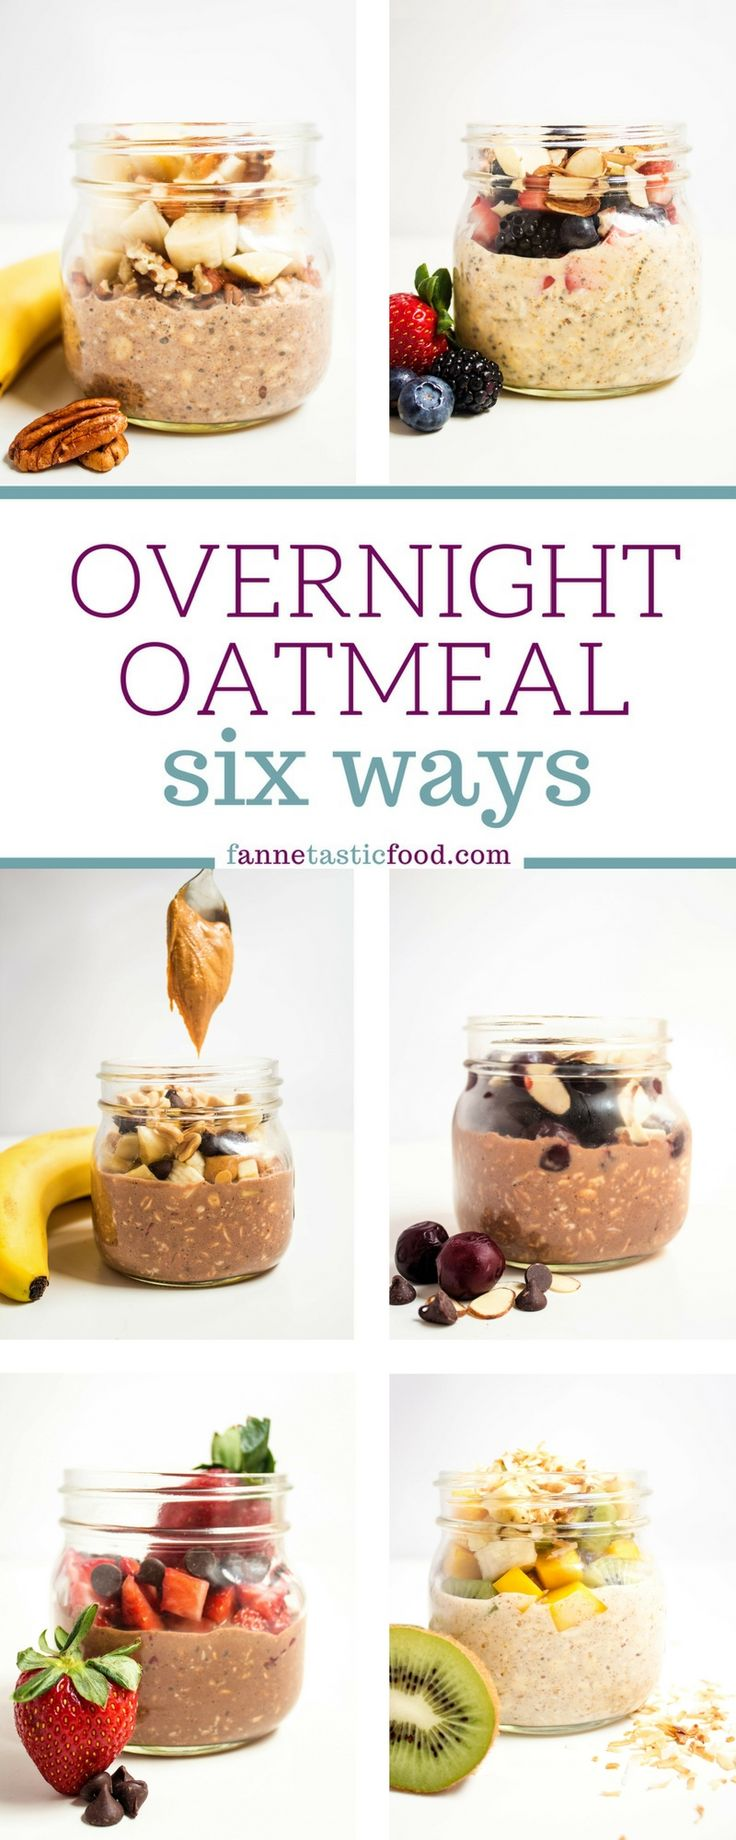 Easy overnight oatmeal recipes - mix and match flavor combinations for fast and easy breakfasts!